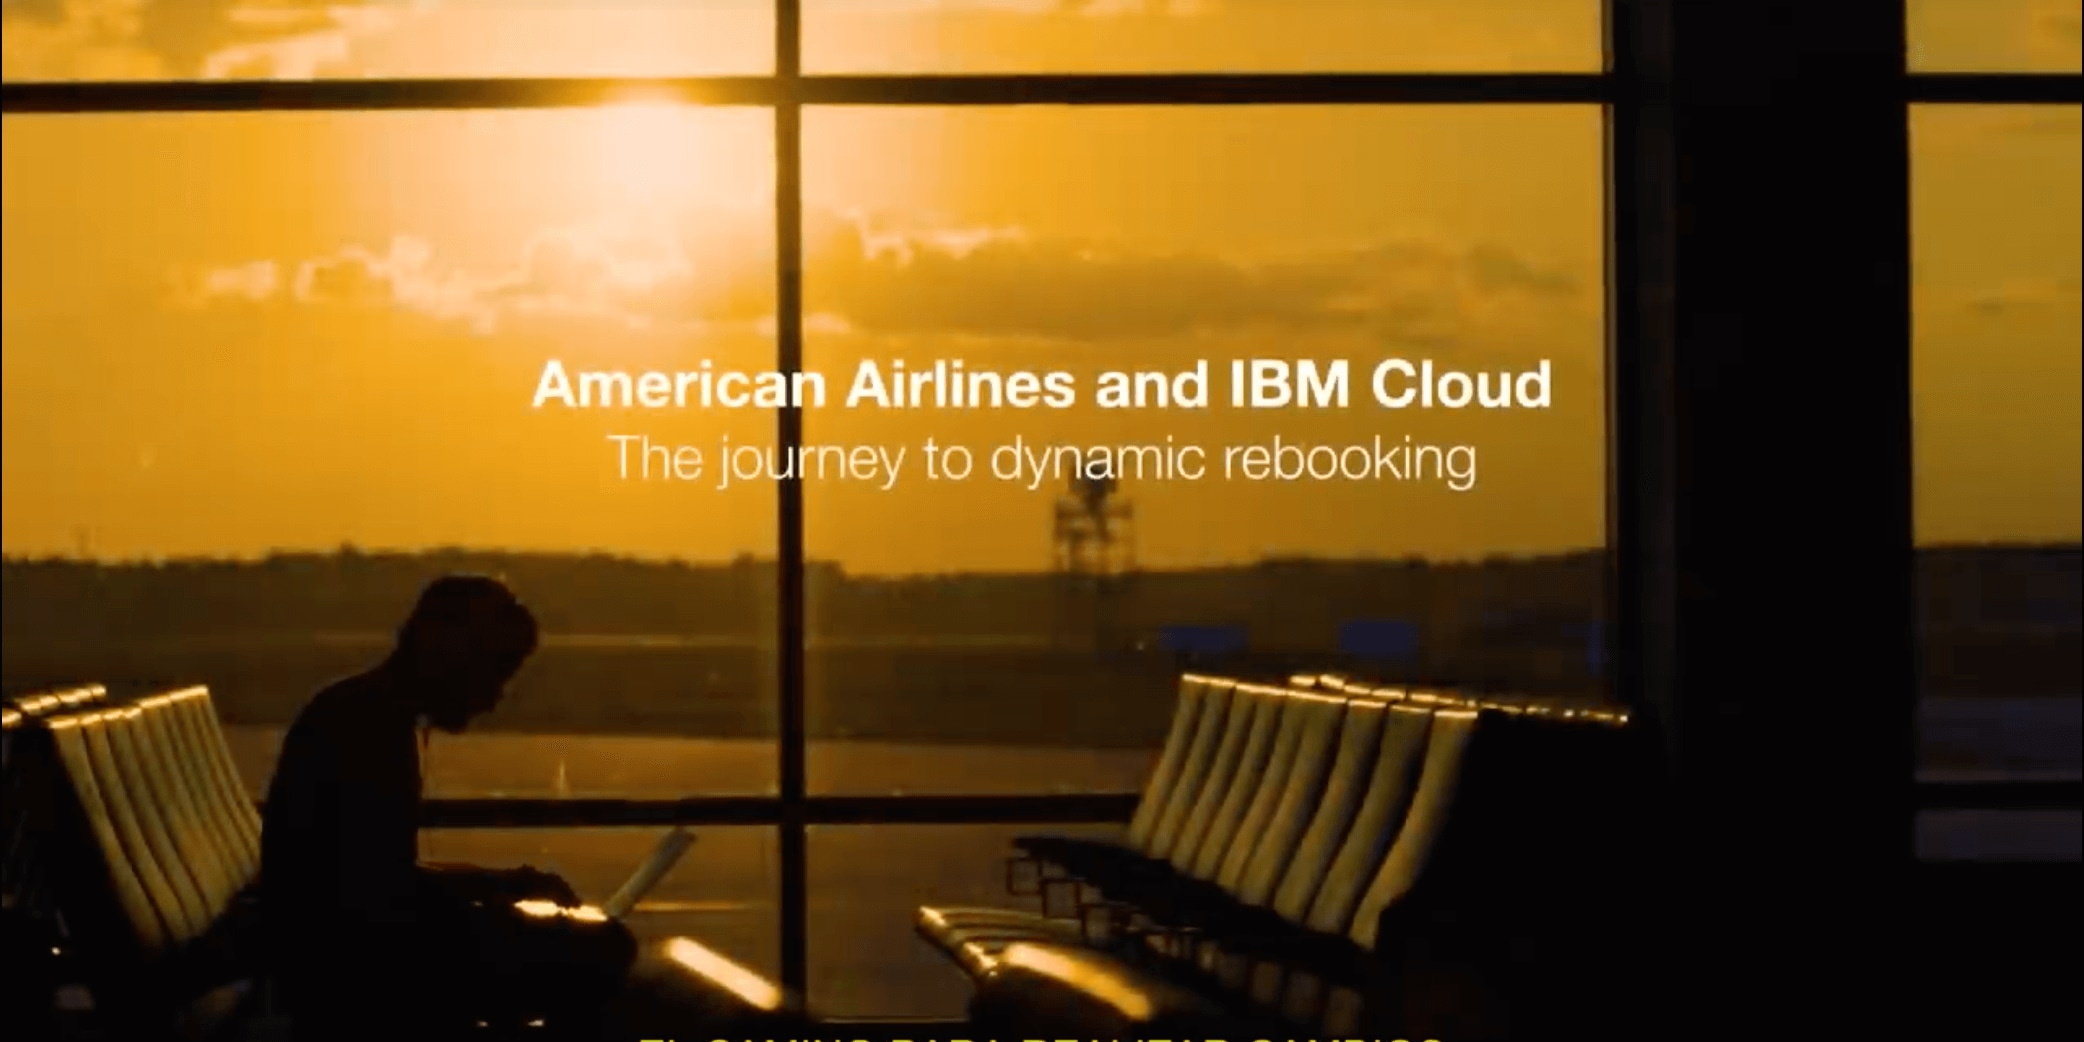 IBM Cloud vuela con American Airlines